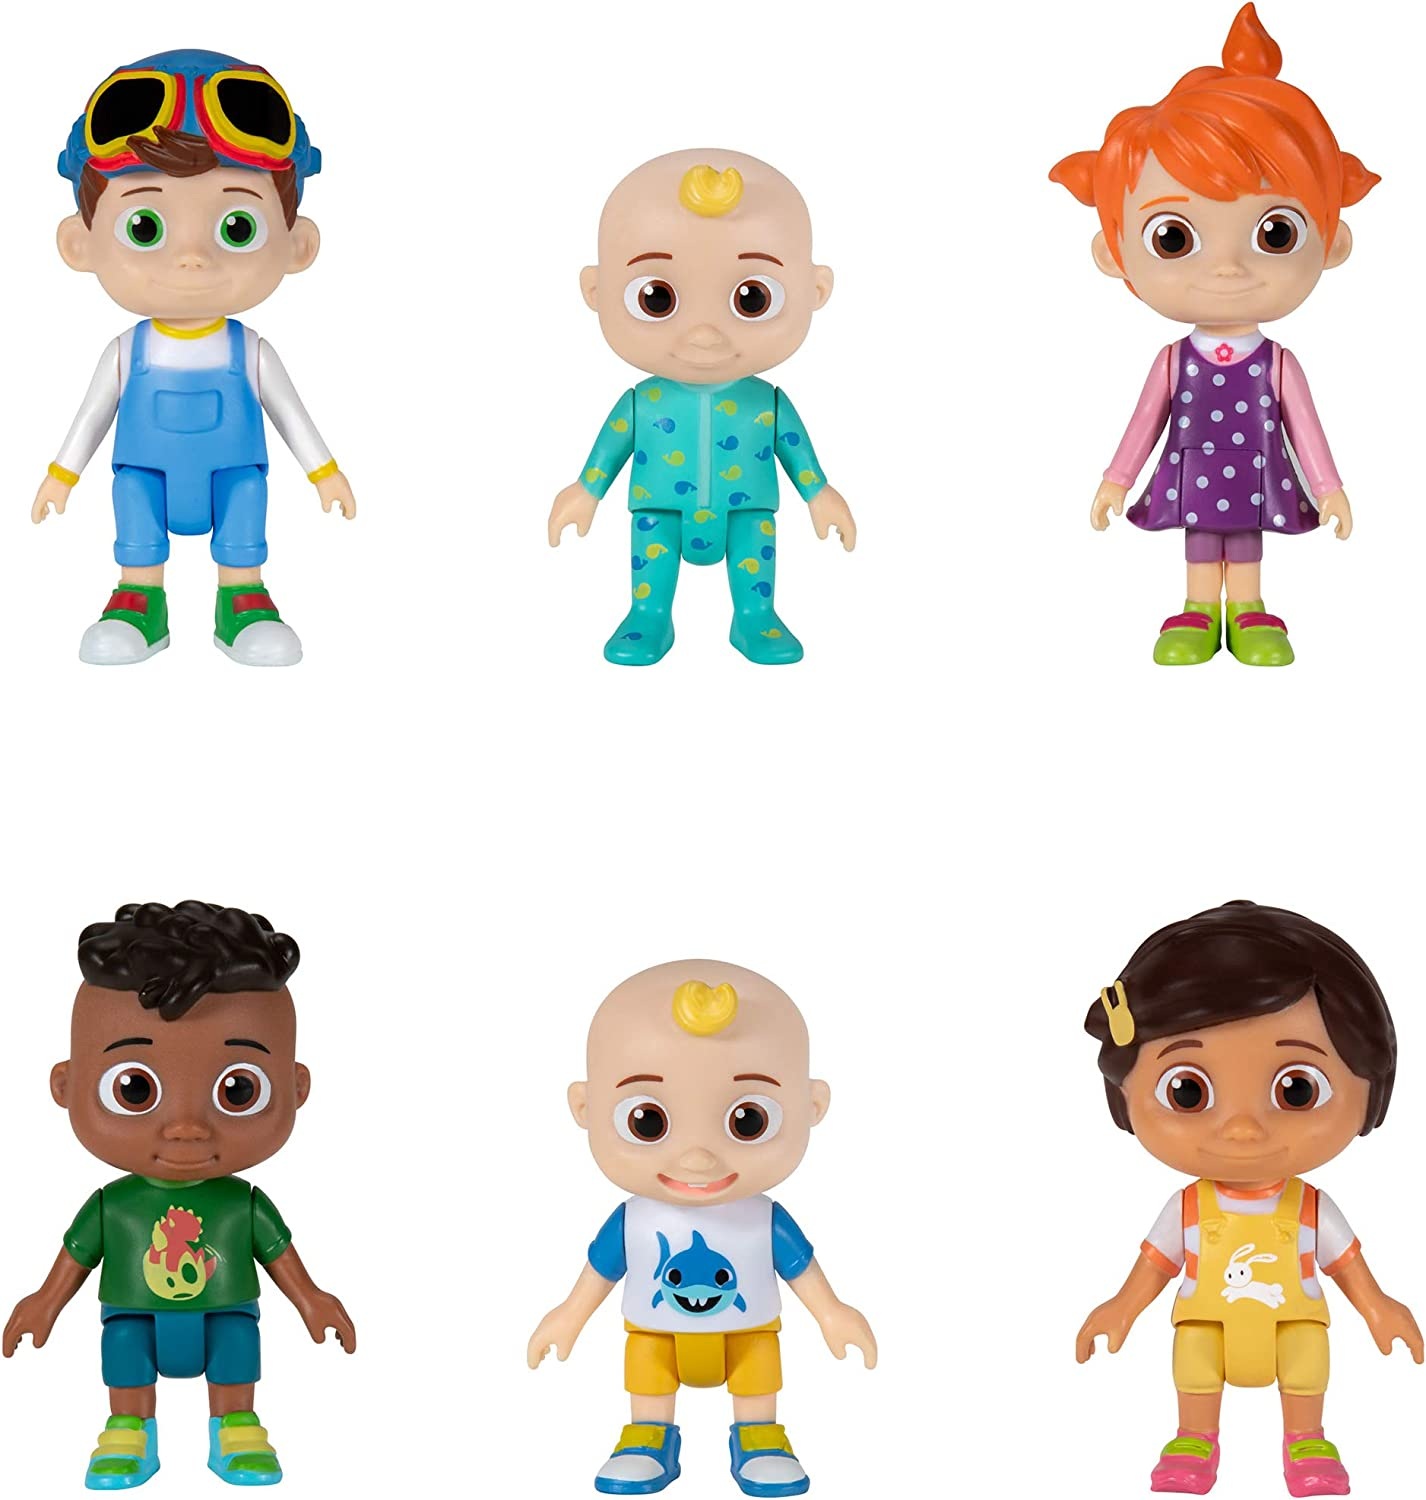 Amazon Com Cocomelon Friends Family 6 Figure Pack 3 Toys Featuring Jj Bella Nina Yoyo Tomtom And Cody Character Toys For Babies Toddlers And Kids Toys Games